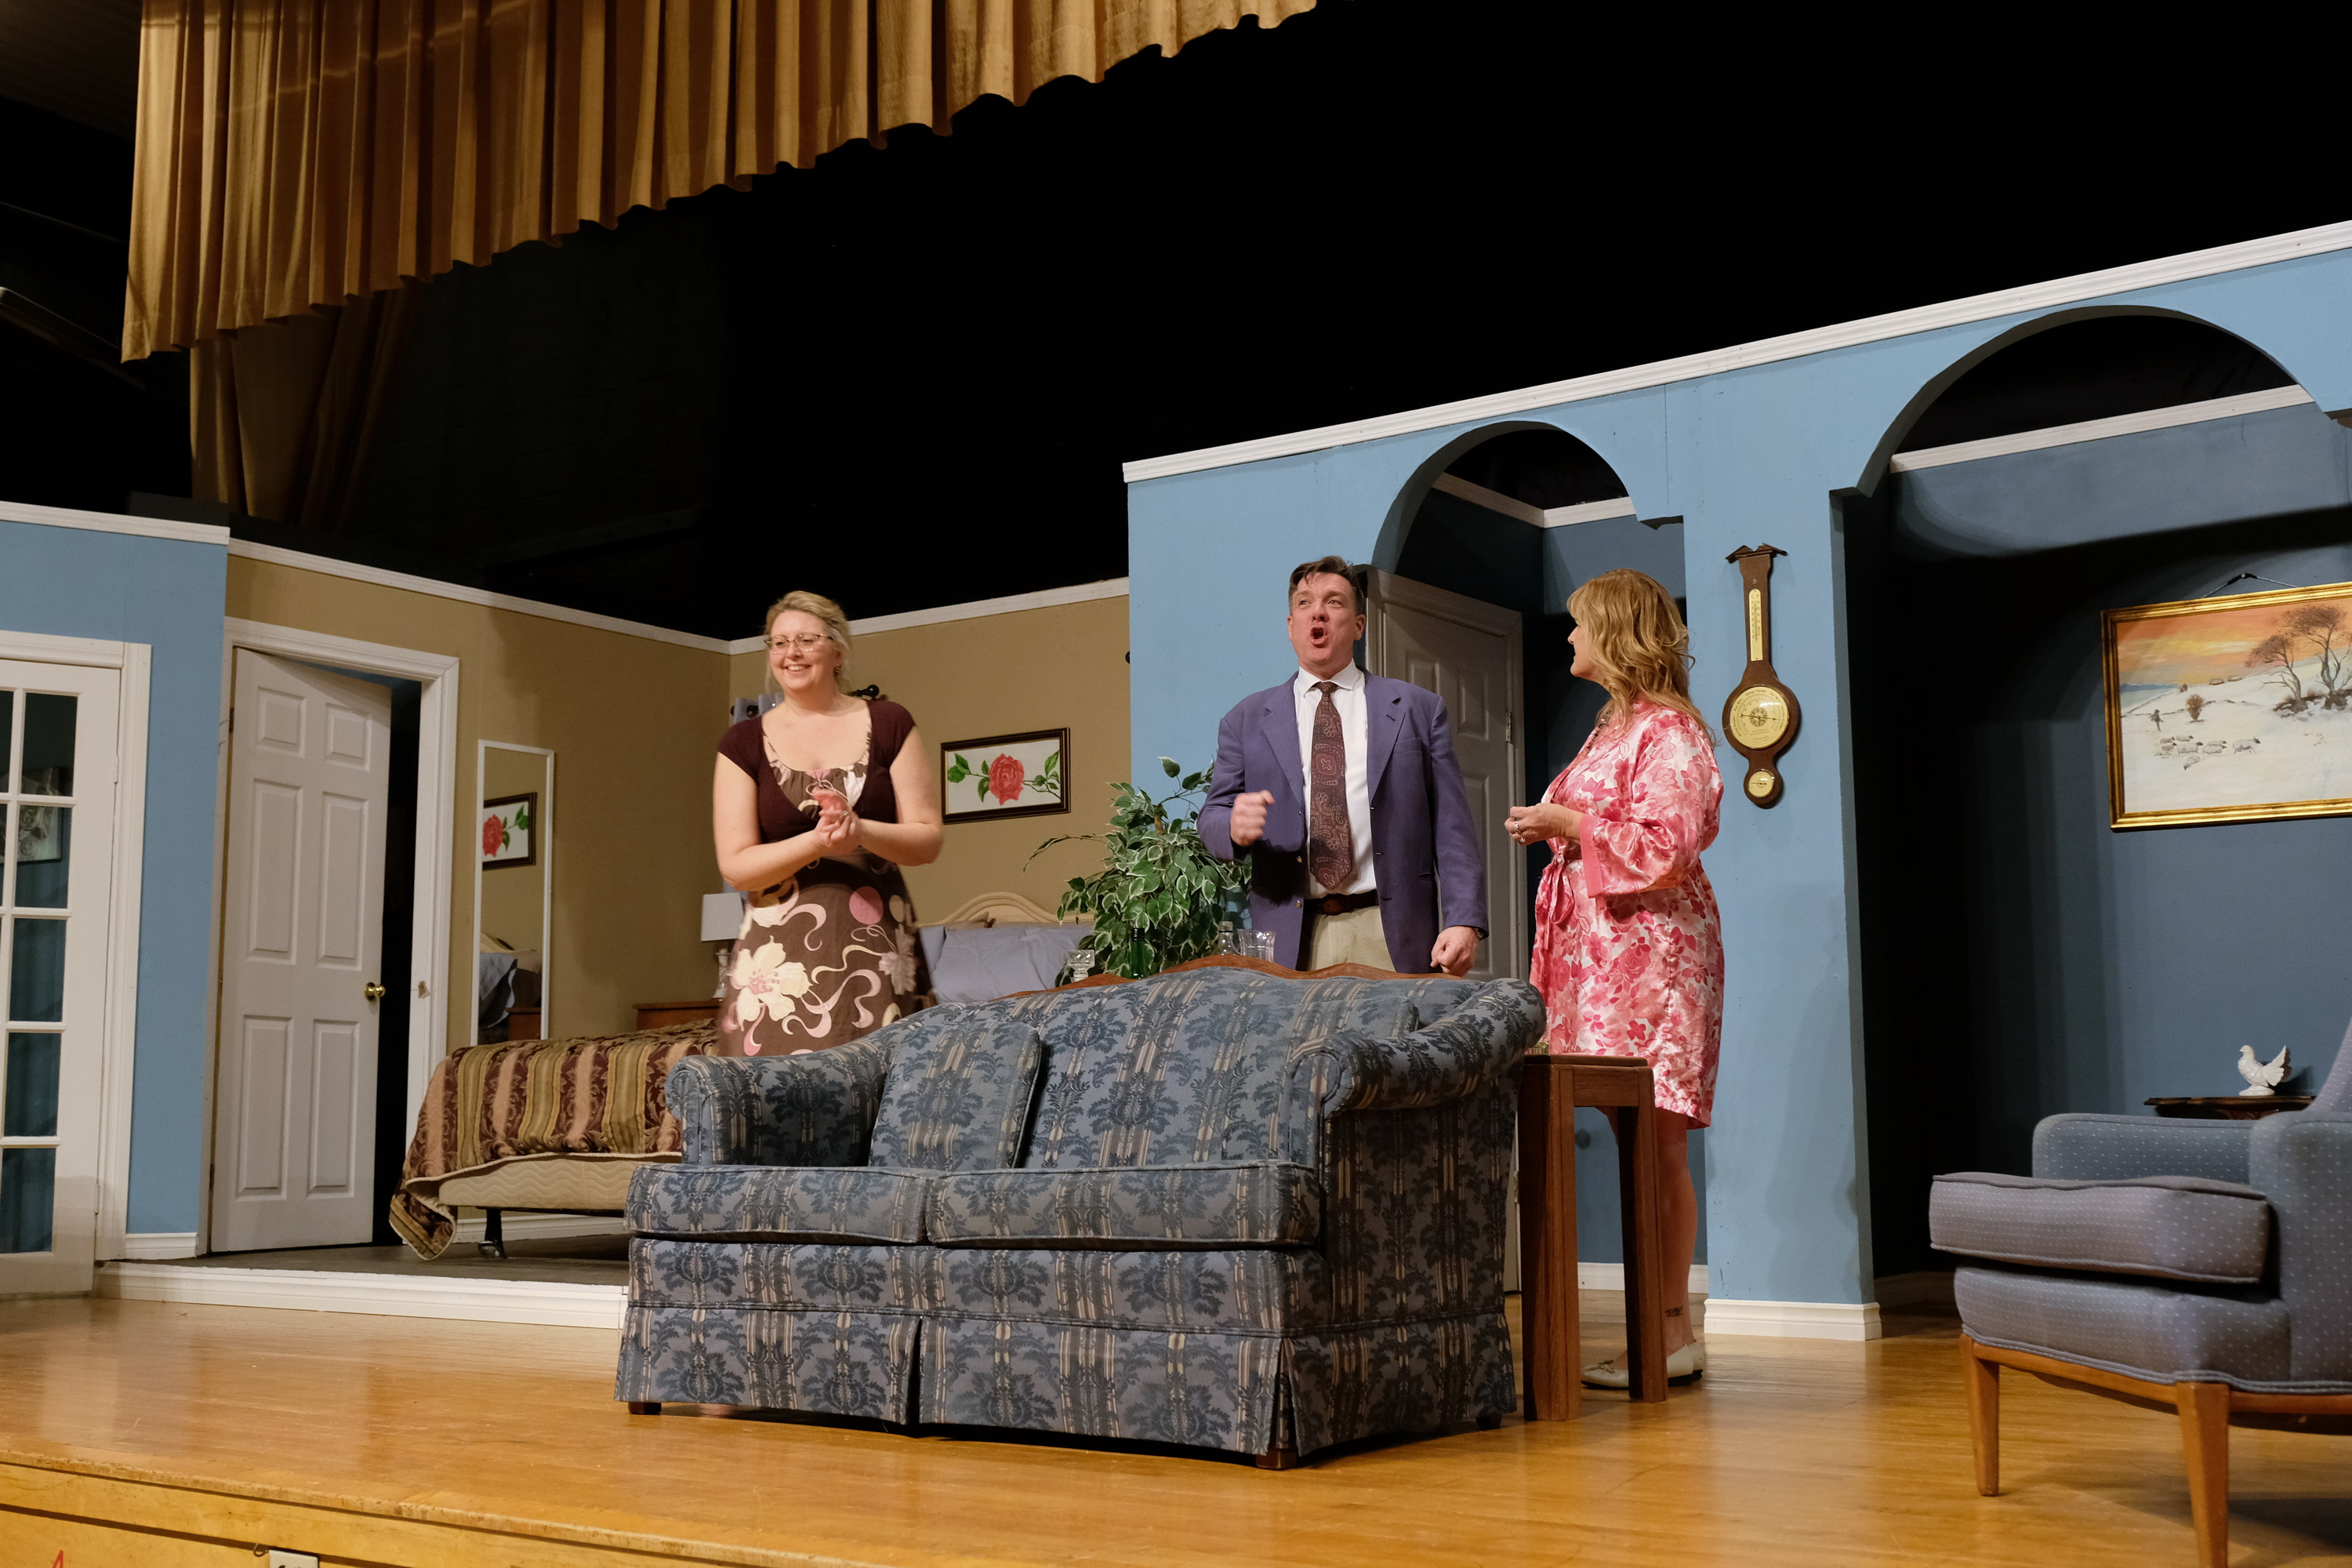 Key For Two: Hilarious Production from Thorold Community Theatre